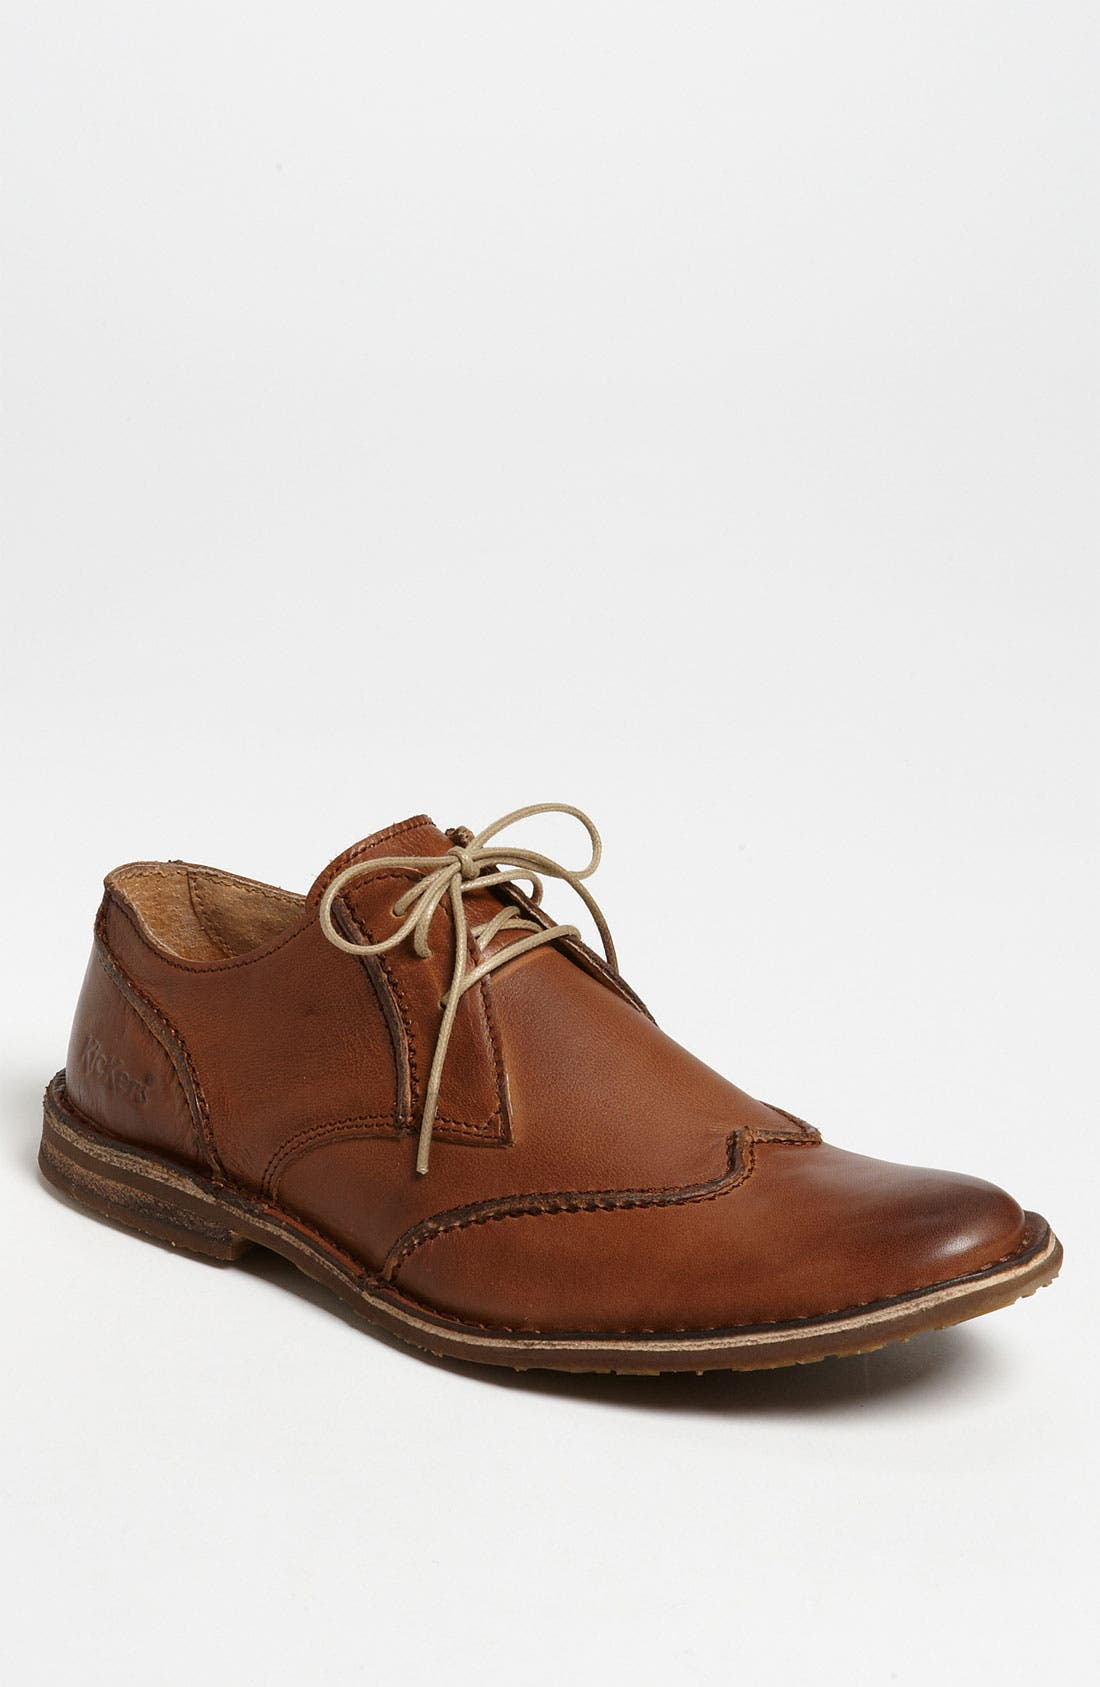 Main Image - Kickers 'Citebat' Oxford